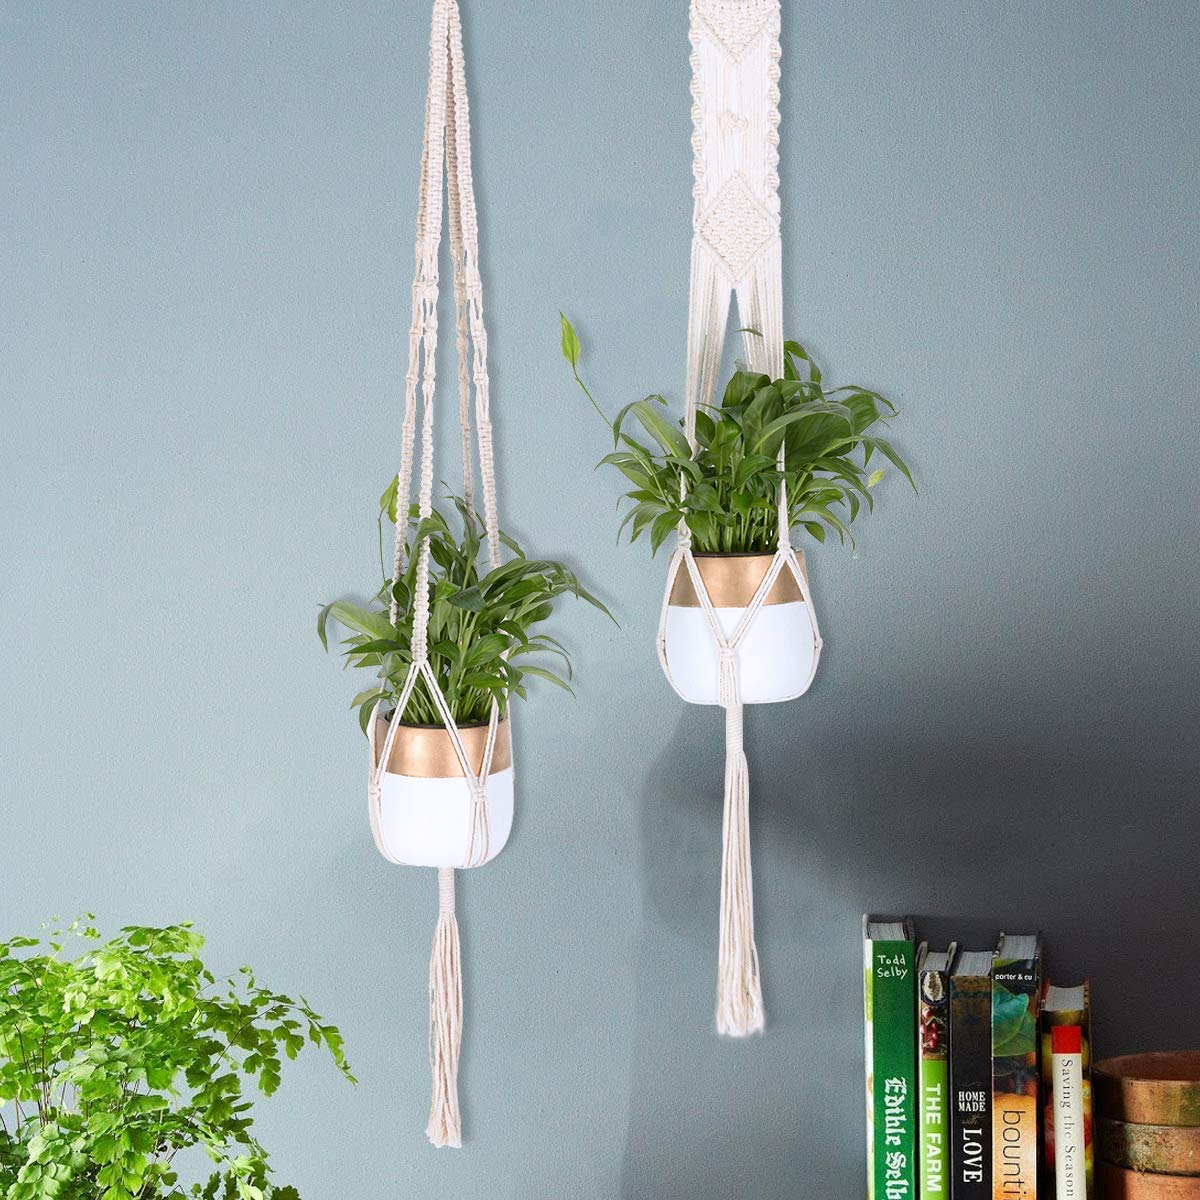 Set of 3 Macrame Plant Hangers Macrame Hanging Planter Indoor